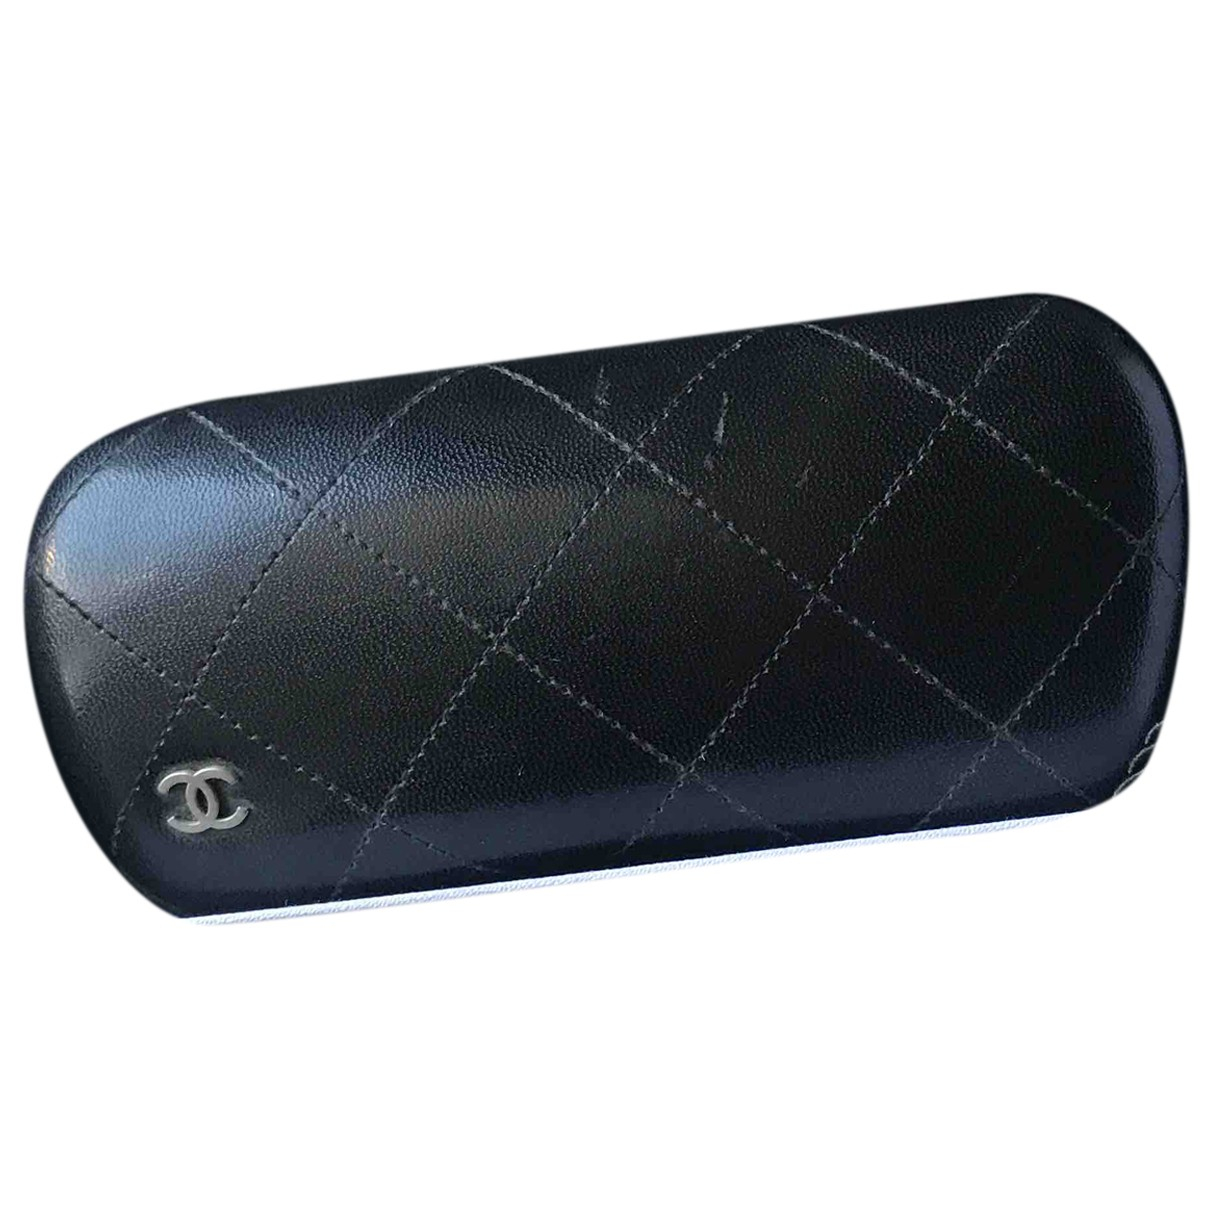 Chanel N Black Leather Home decor for Life & Living N